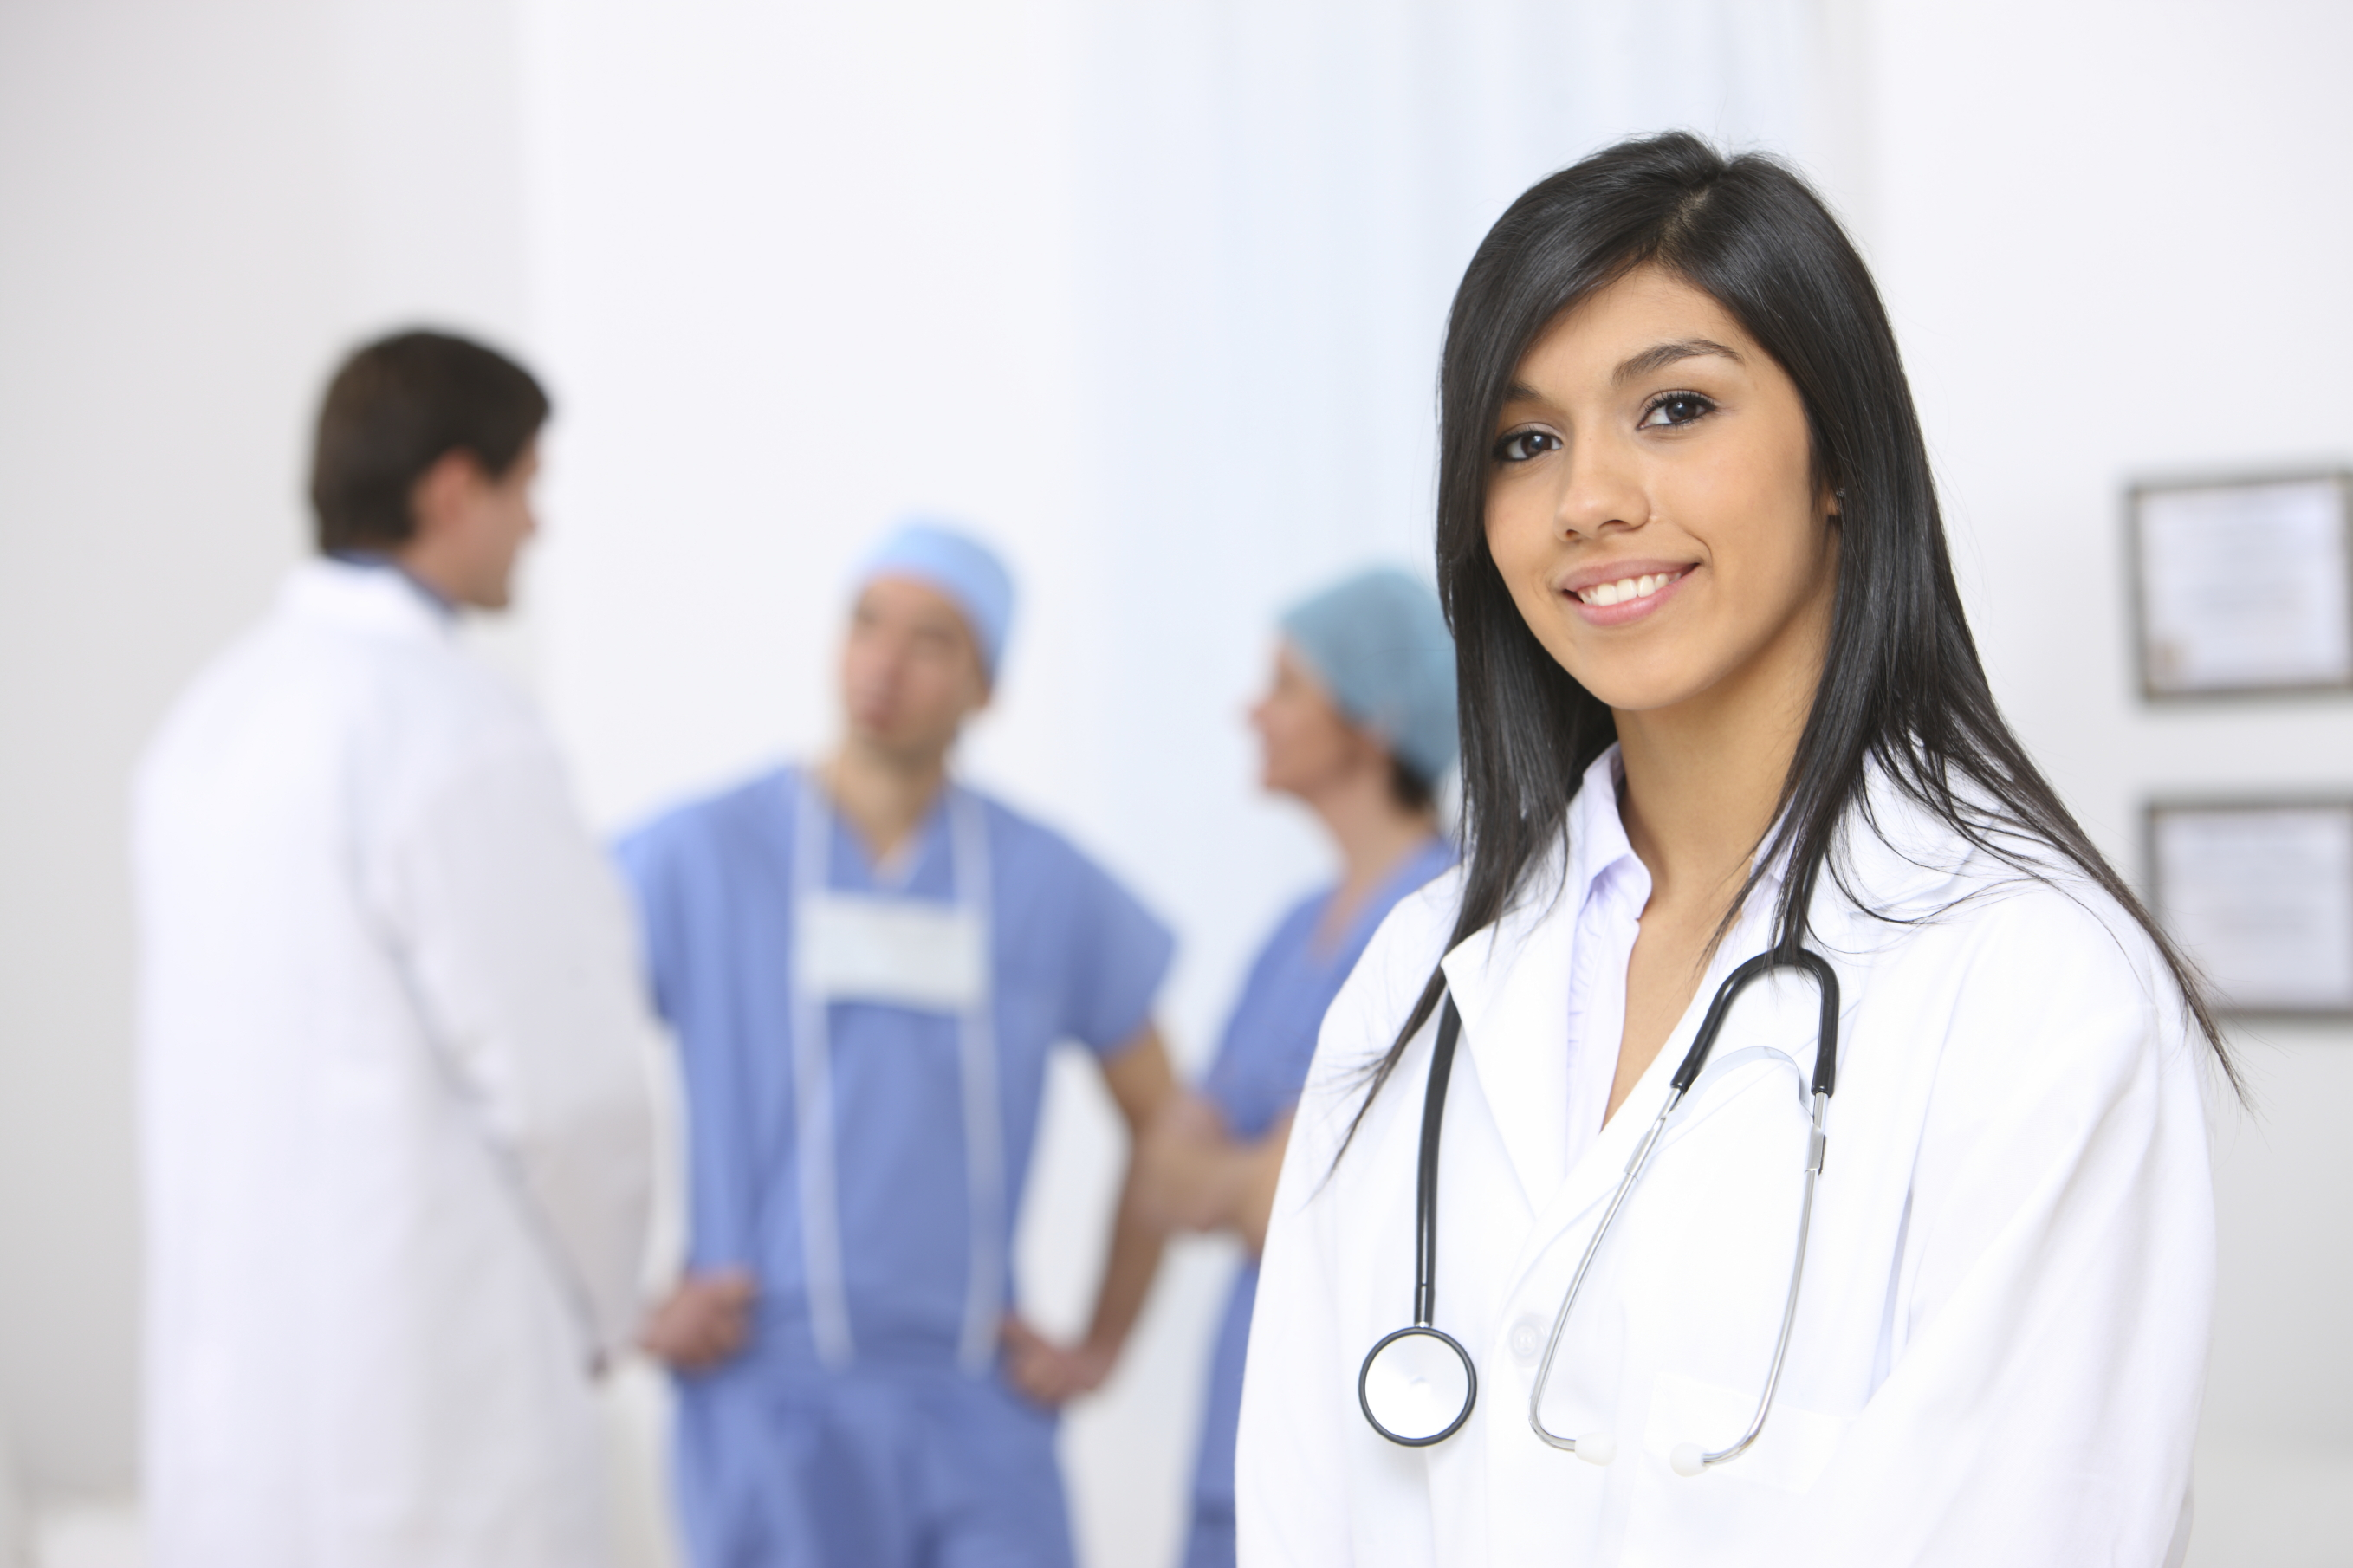 Fast Track Physician Technician Program Medical Career Specialists 2716x1810